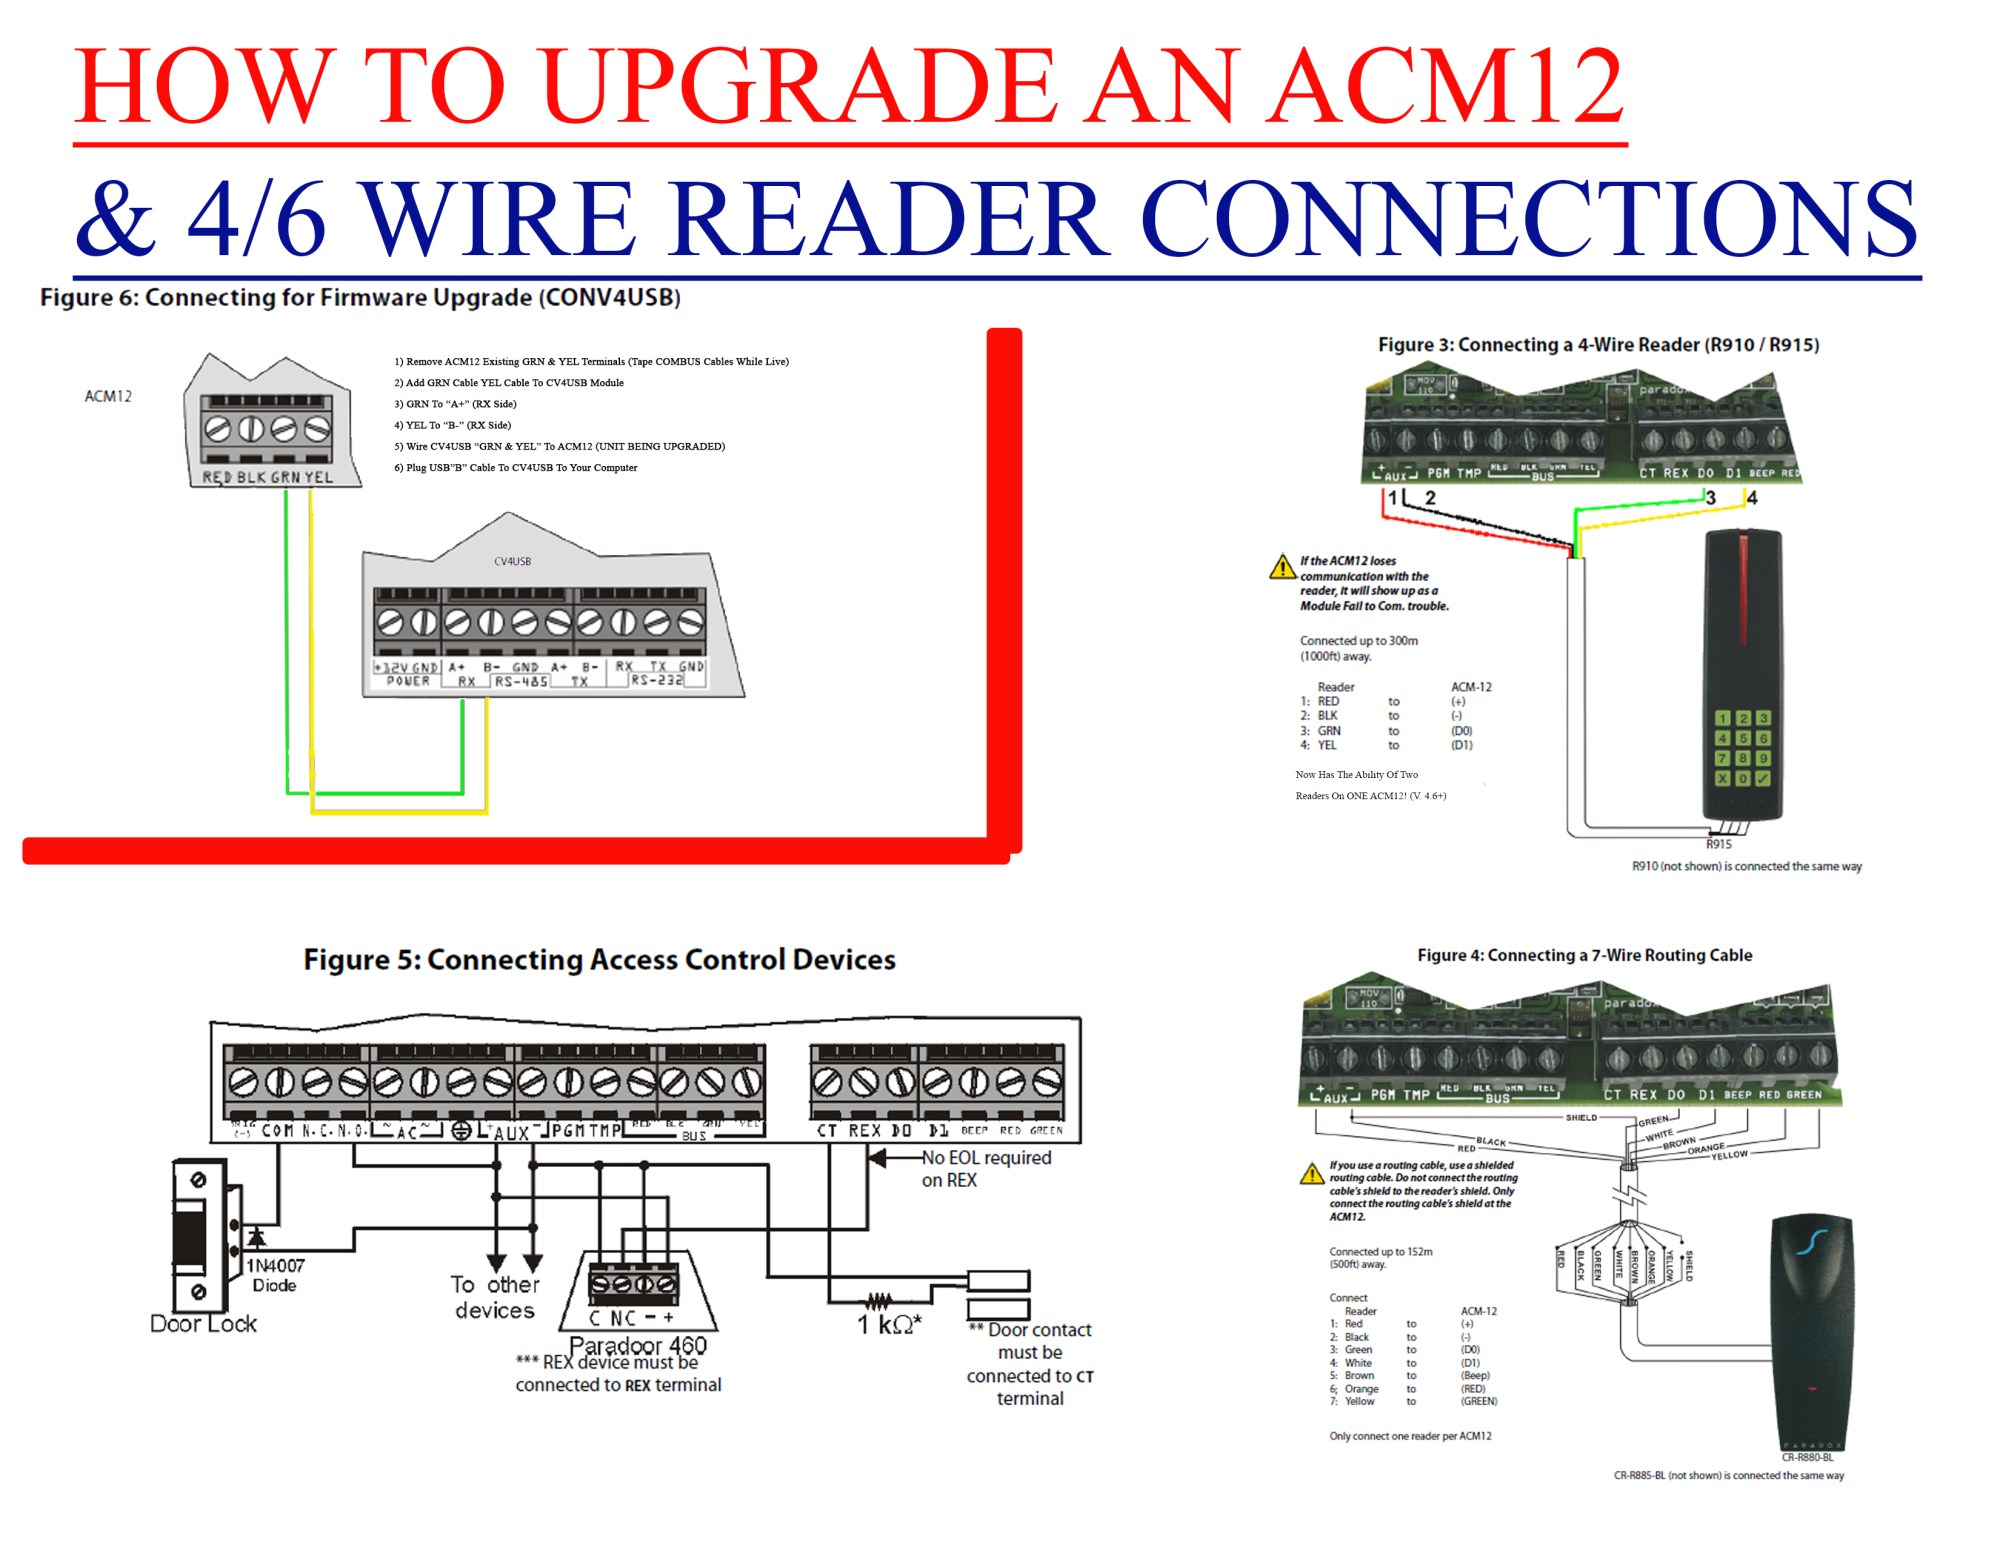 hight resolution of how to upgrade and acm12 connection diagram